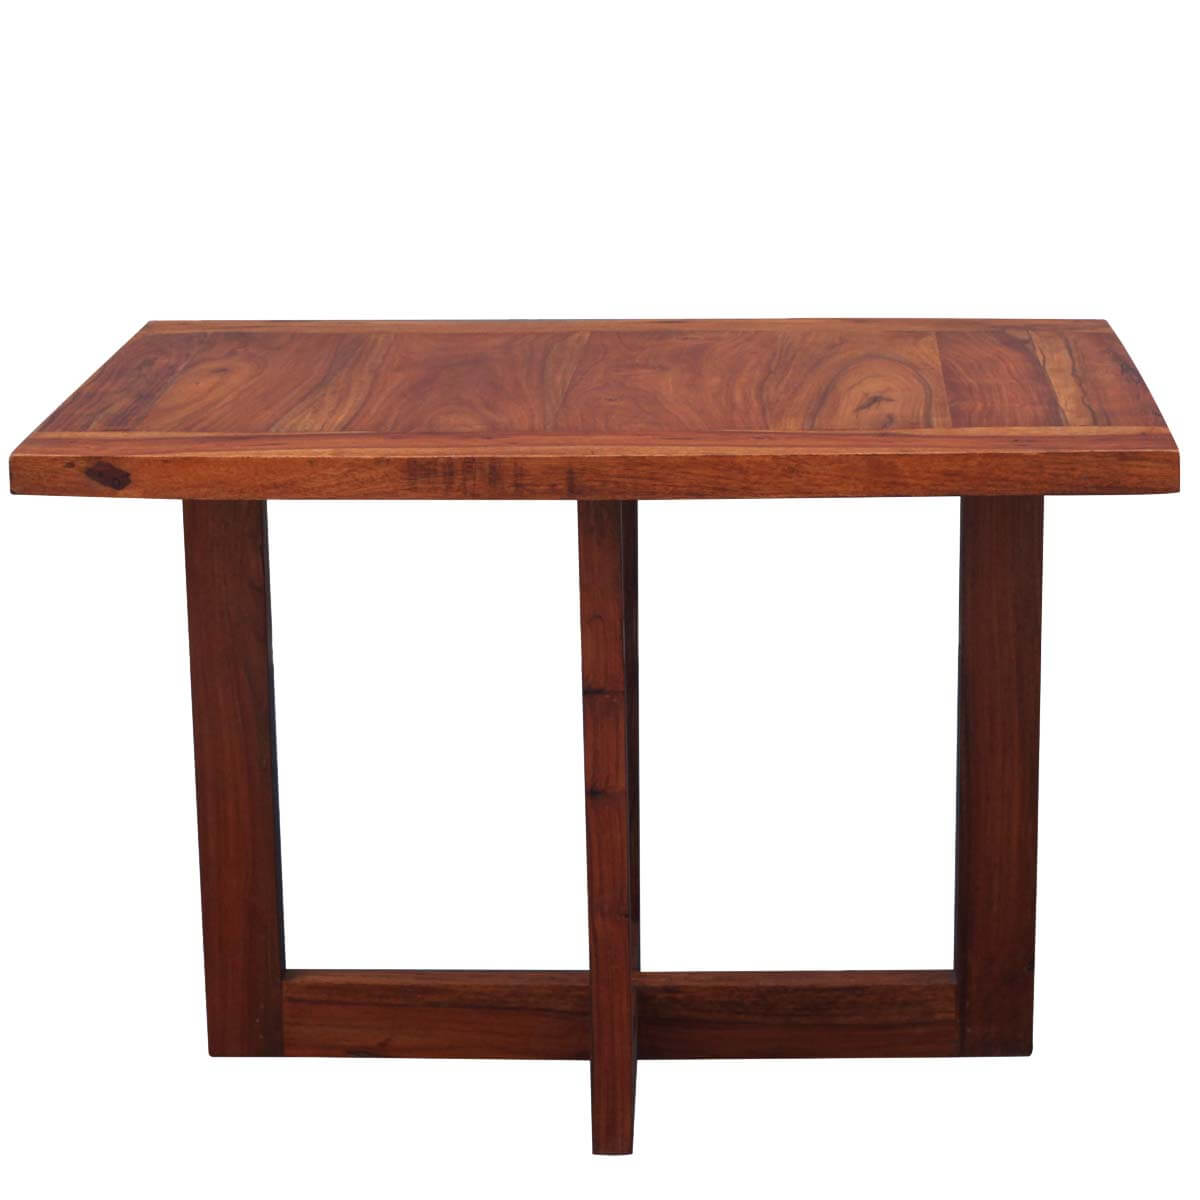 Solid Wood 2 Frame Pedestal Coffee Table